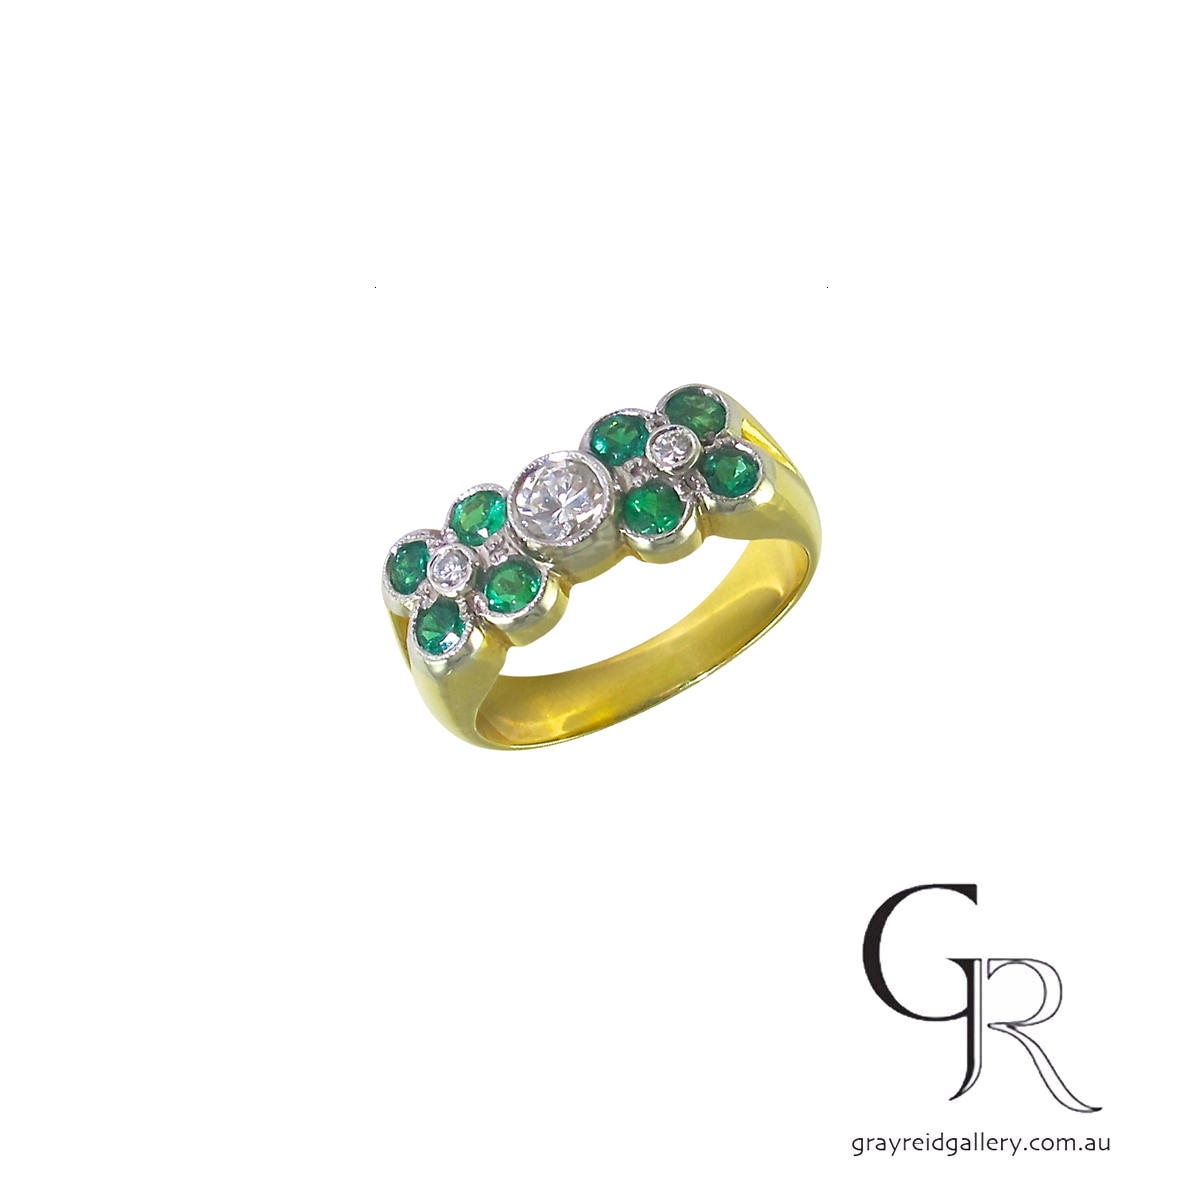 emerald and diamond ring in yellow gold.jpg